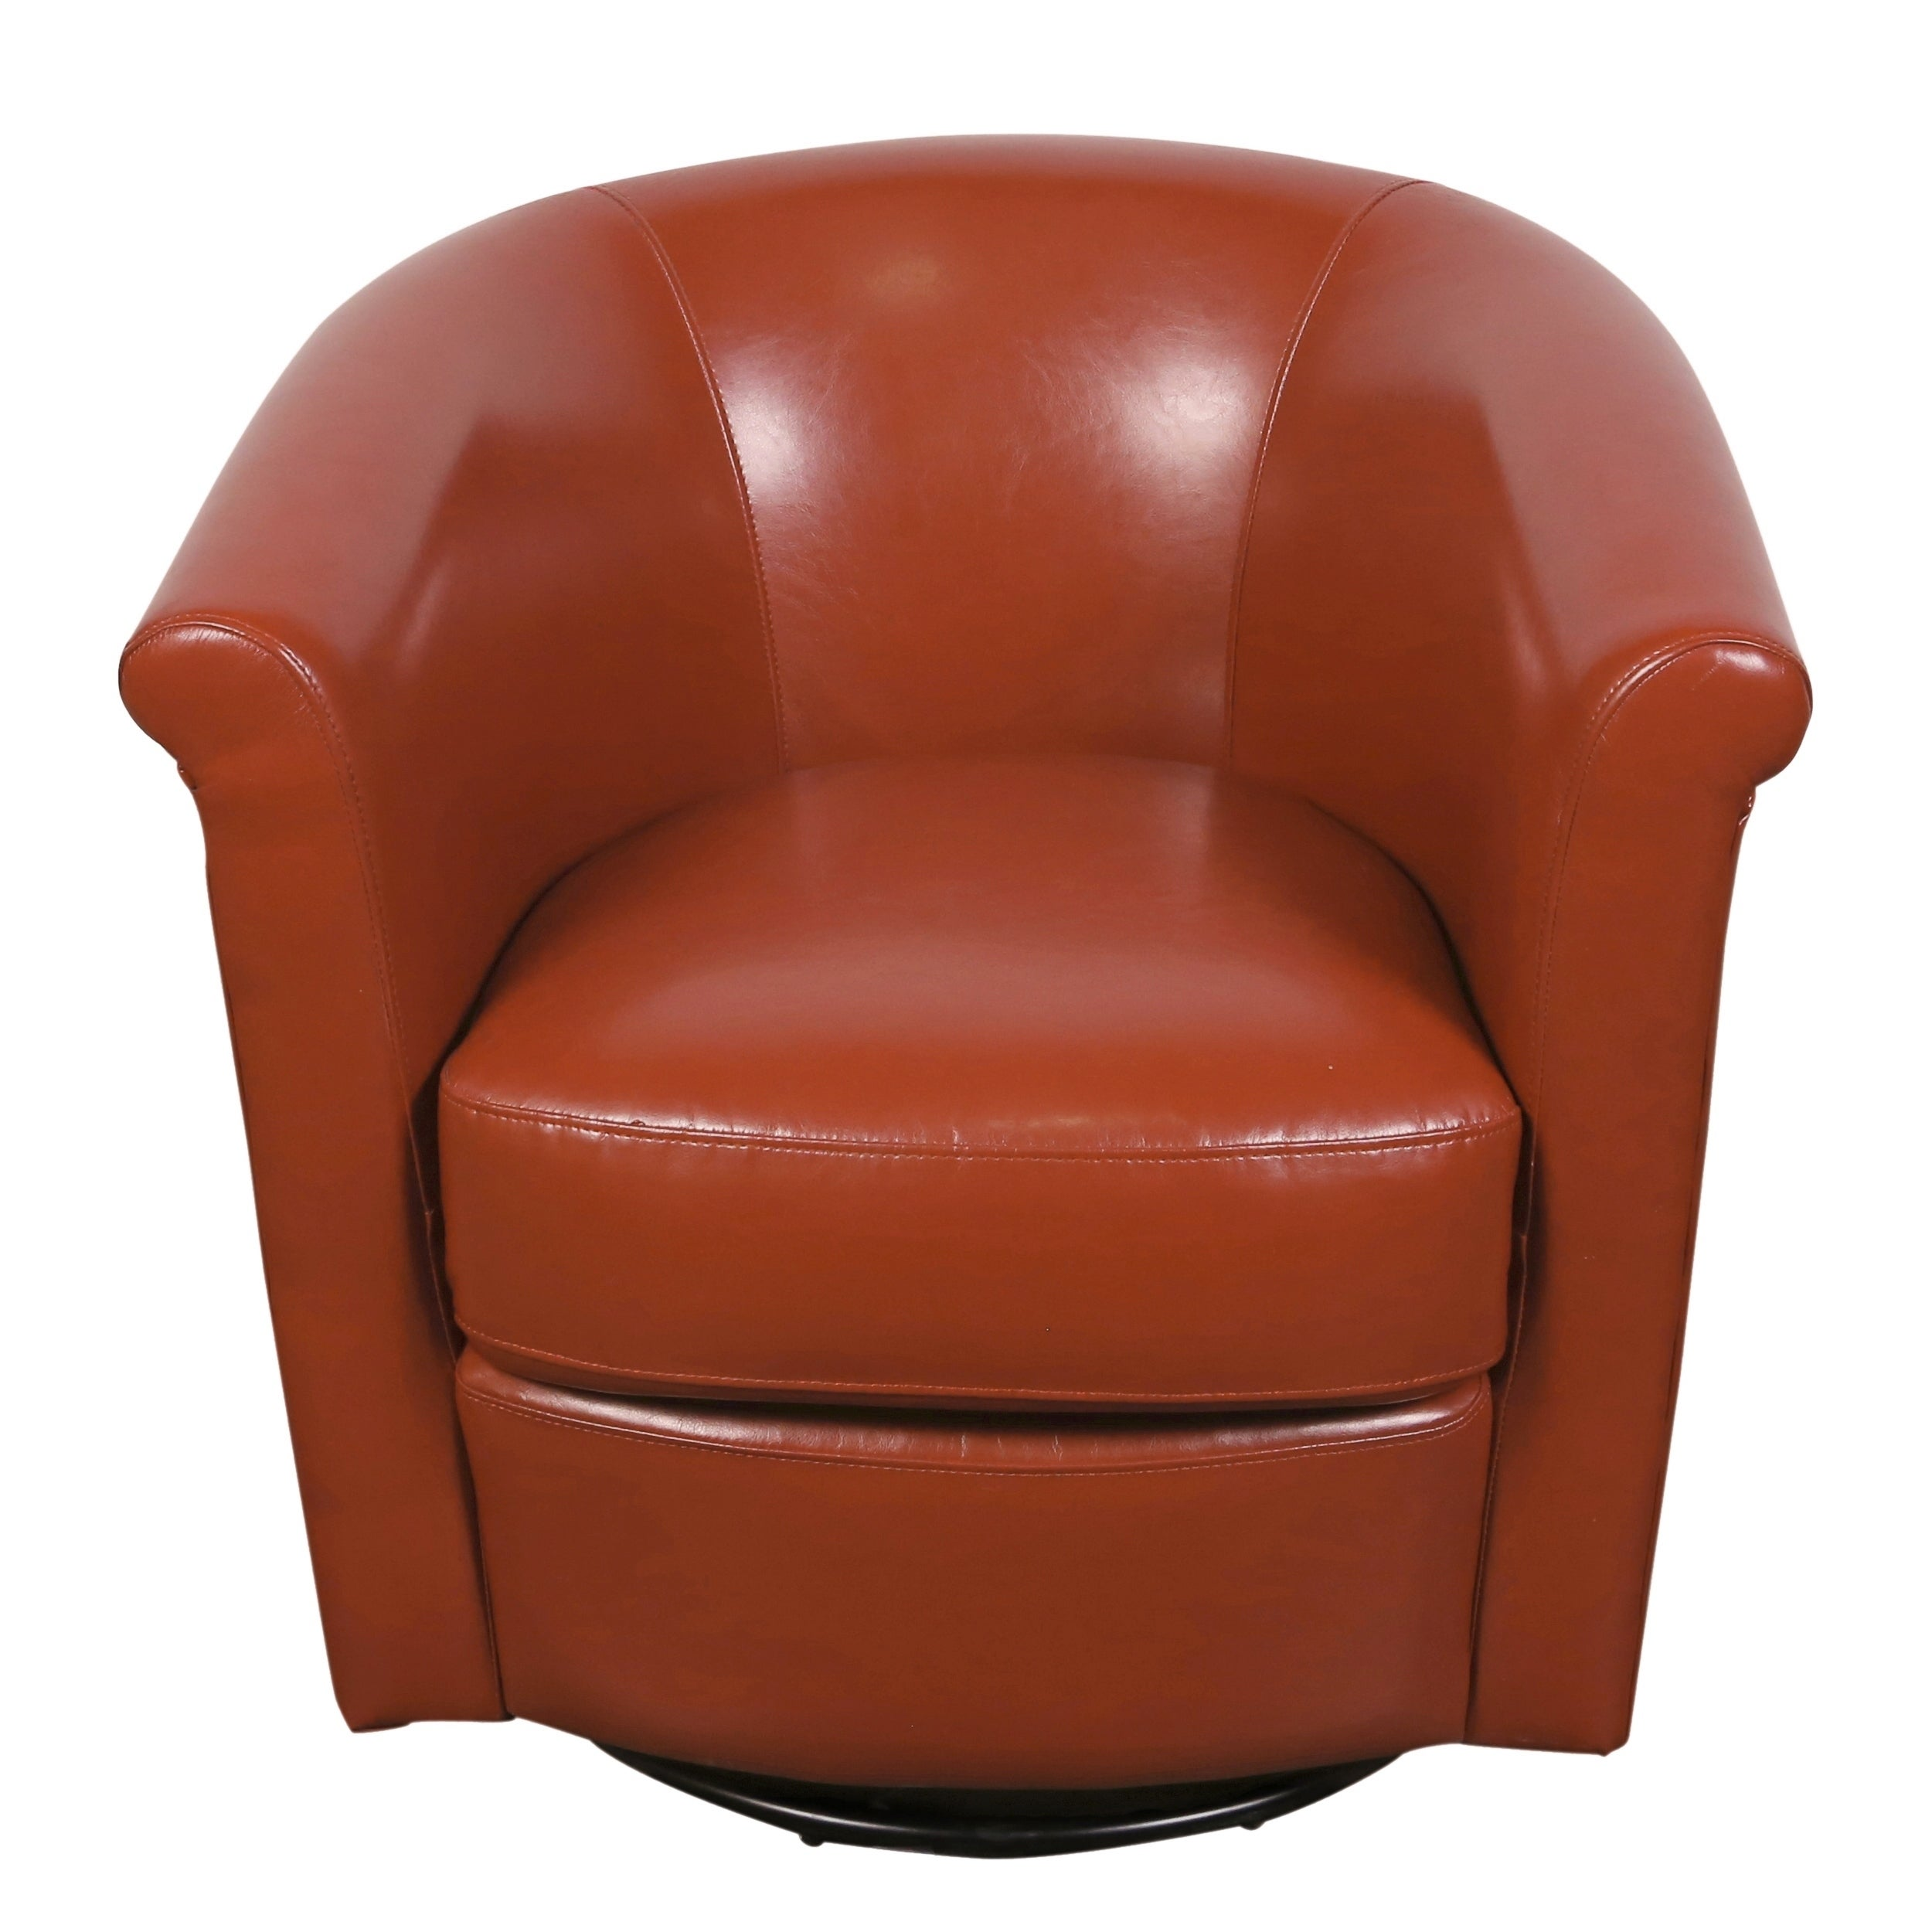 Incredible Porter Designs Marvel Contemporary Leather Look Swivel Accent Chair Sunset Orange 29H X 31D X 31W Pdpeps Interior Chair Design Pdpepsorg